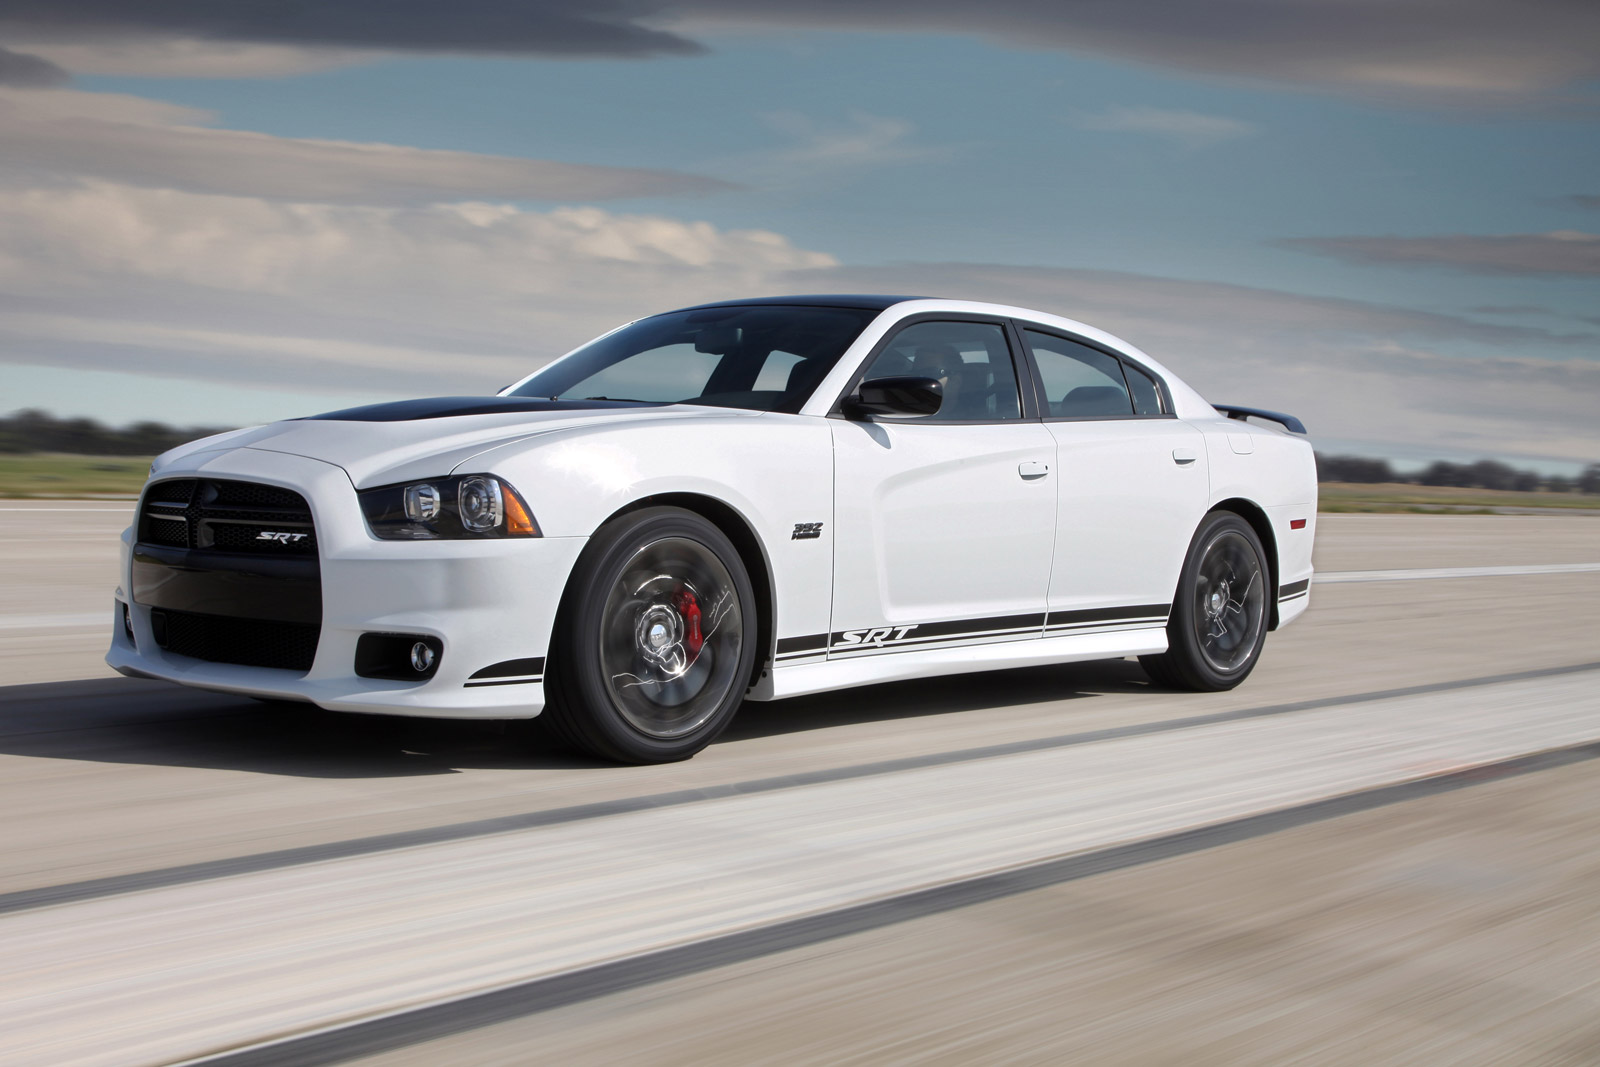 2013 Dodge Charger #23